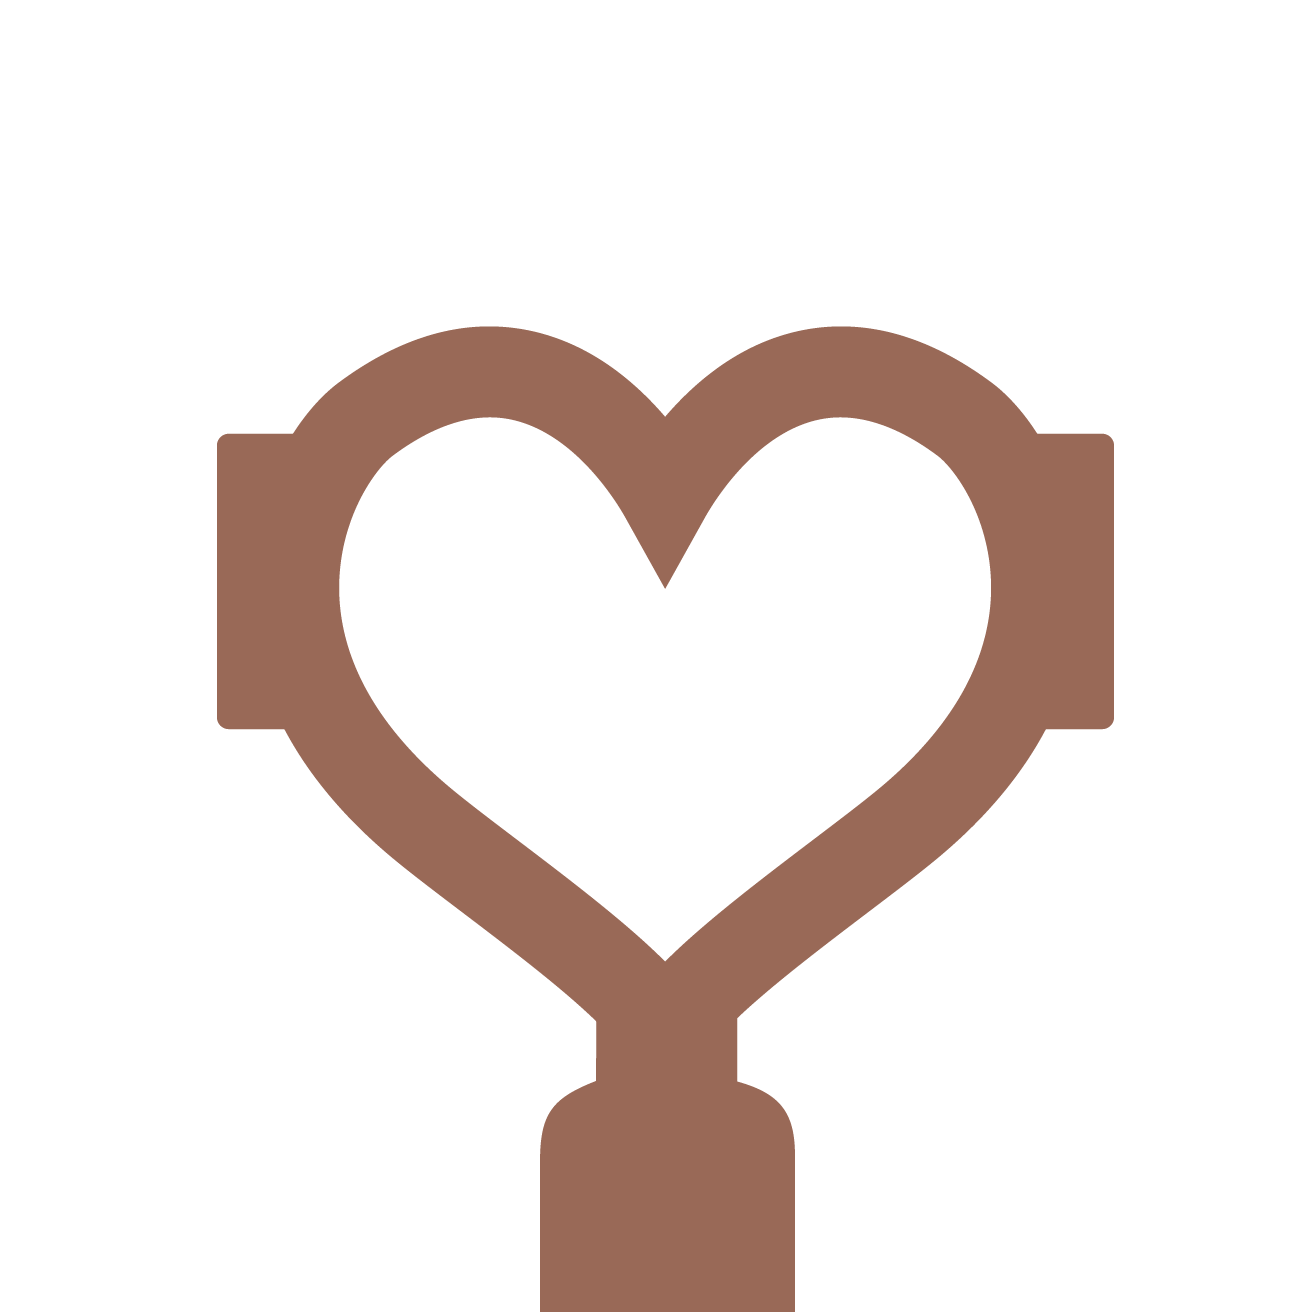 Moccamaster KBG741 Select - Pastel Green, with FREE 250g bag of Coffee